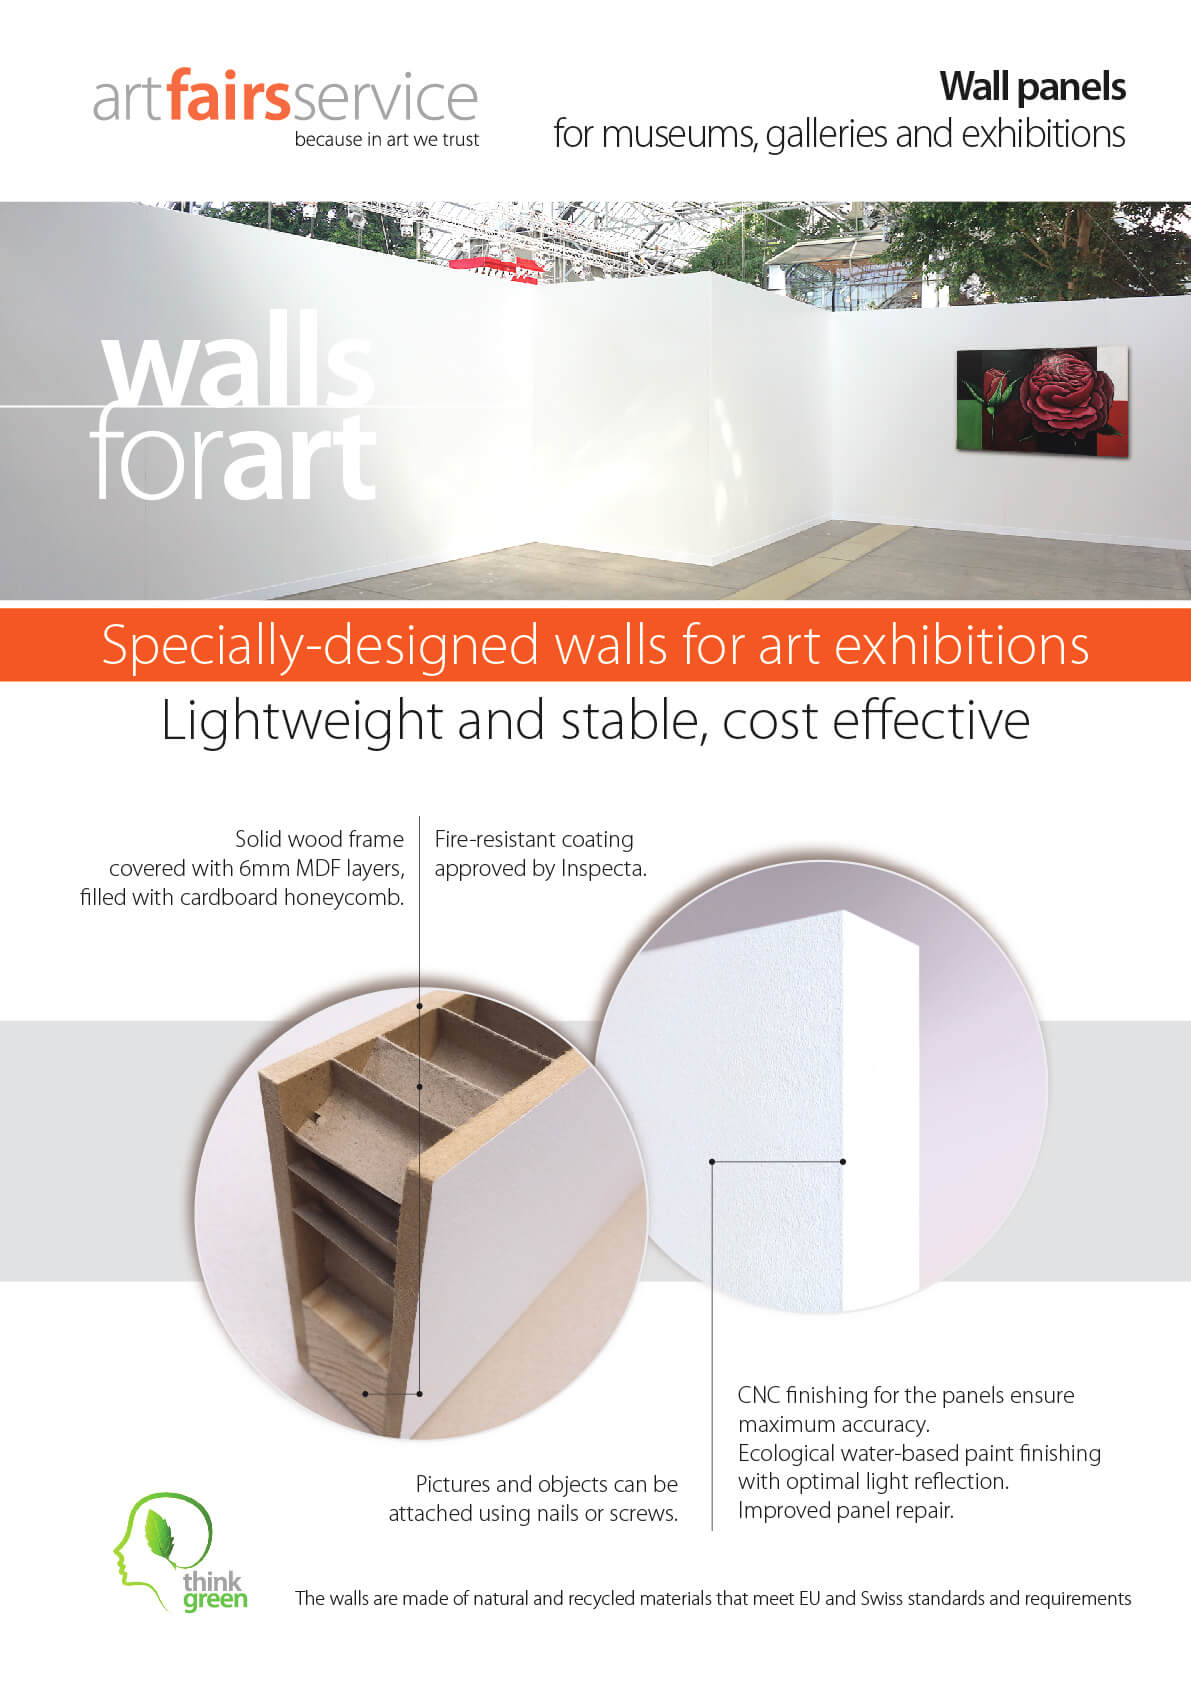 Wall panels for museums, galleries and excibitions